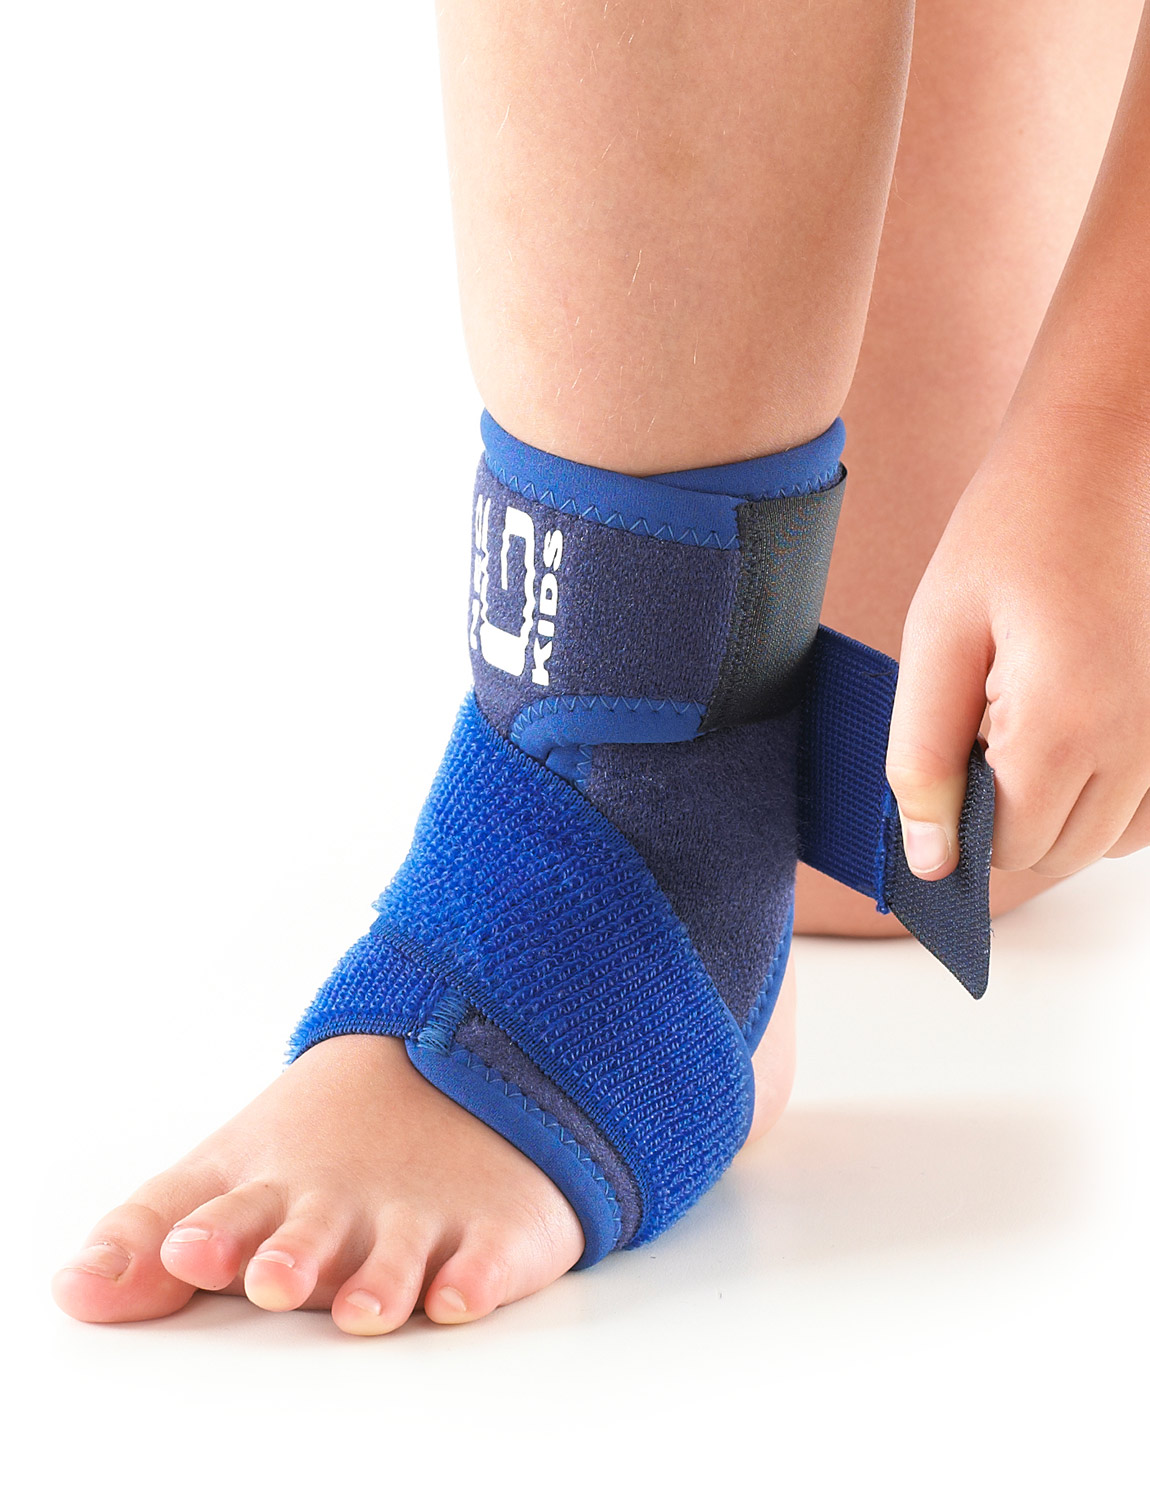 887K - KIDS ANKLE WITH FIGURE OF 8 STRAP